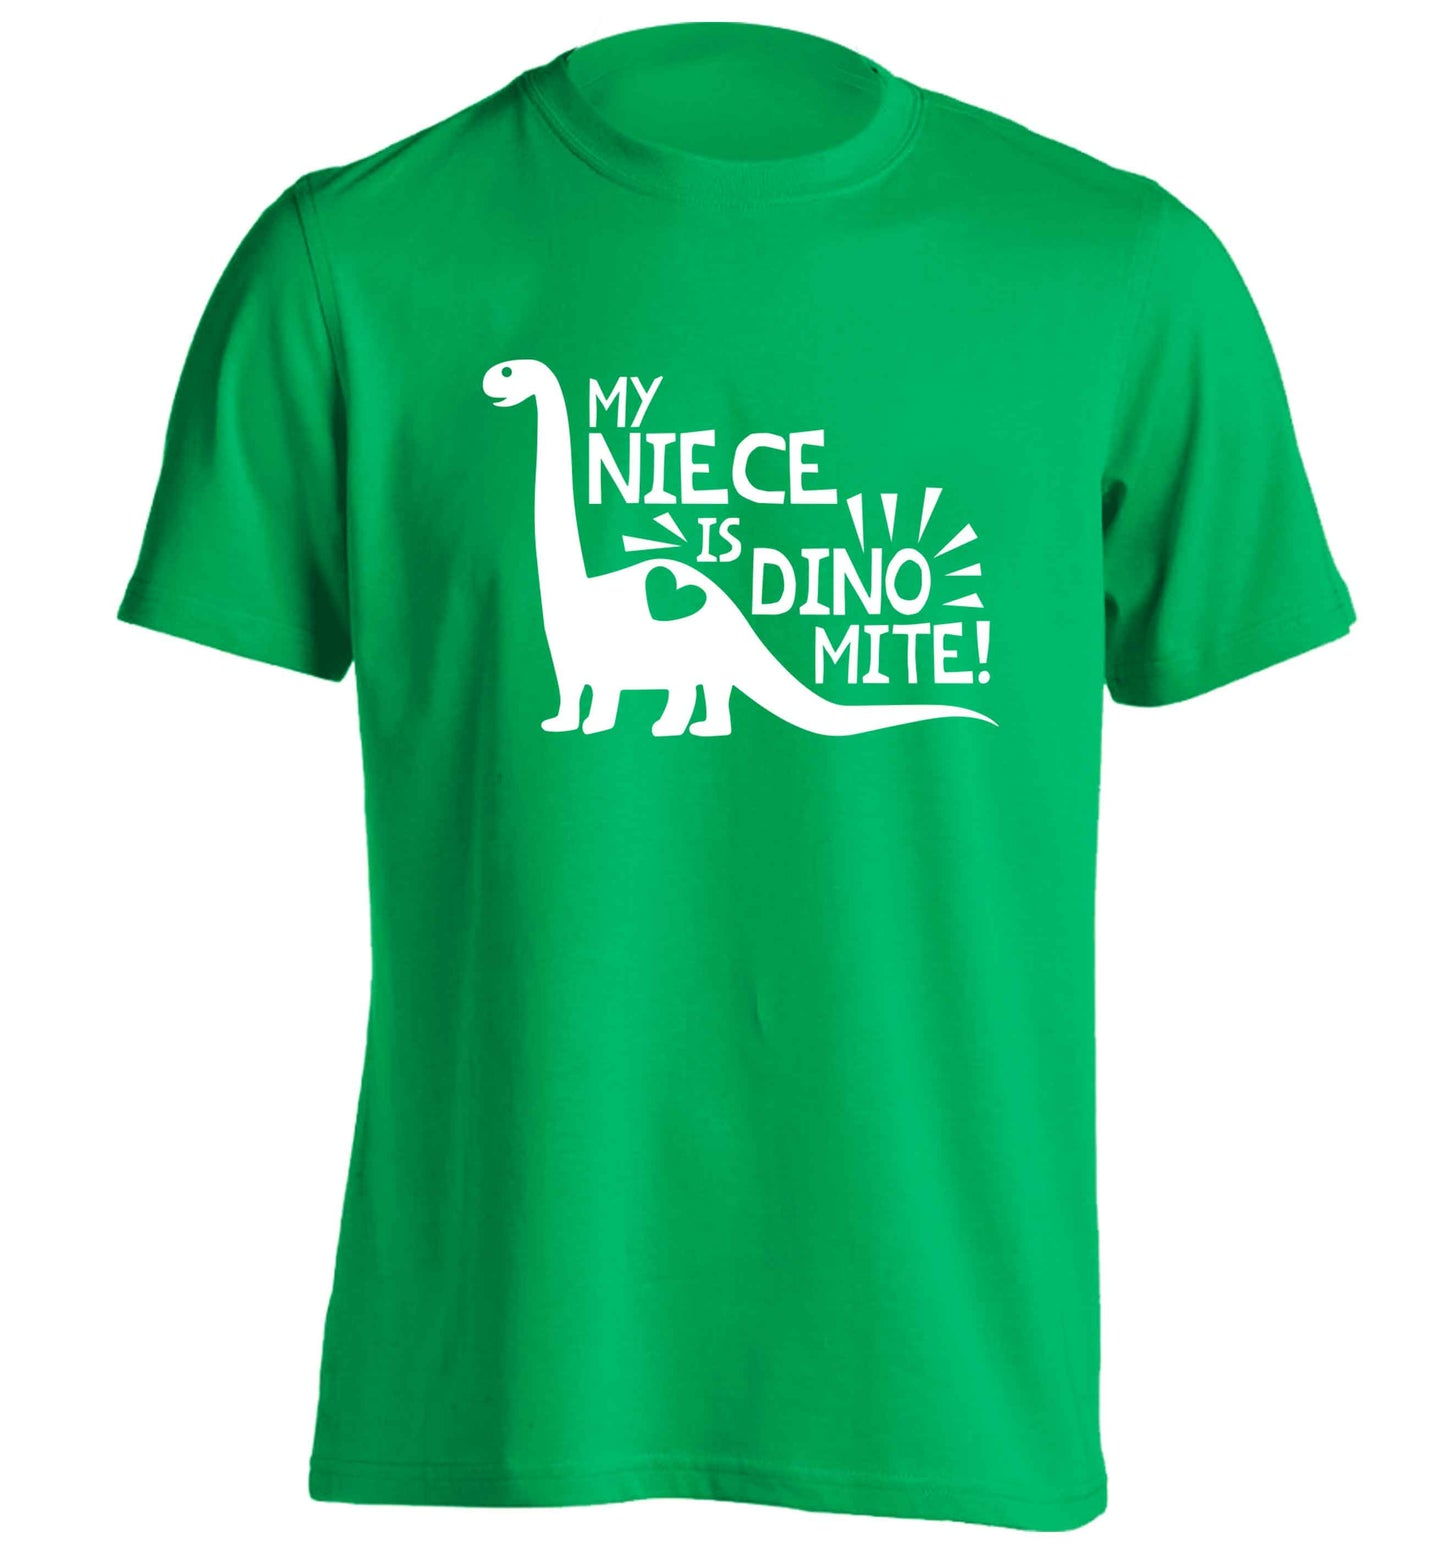 My niece is dinomite! adults unisex green Tshirt 2XL